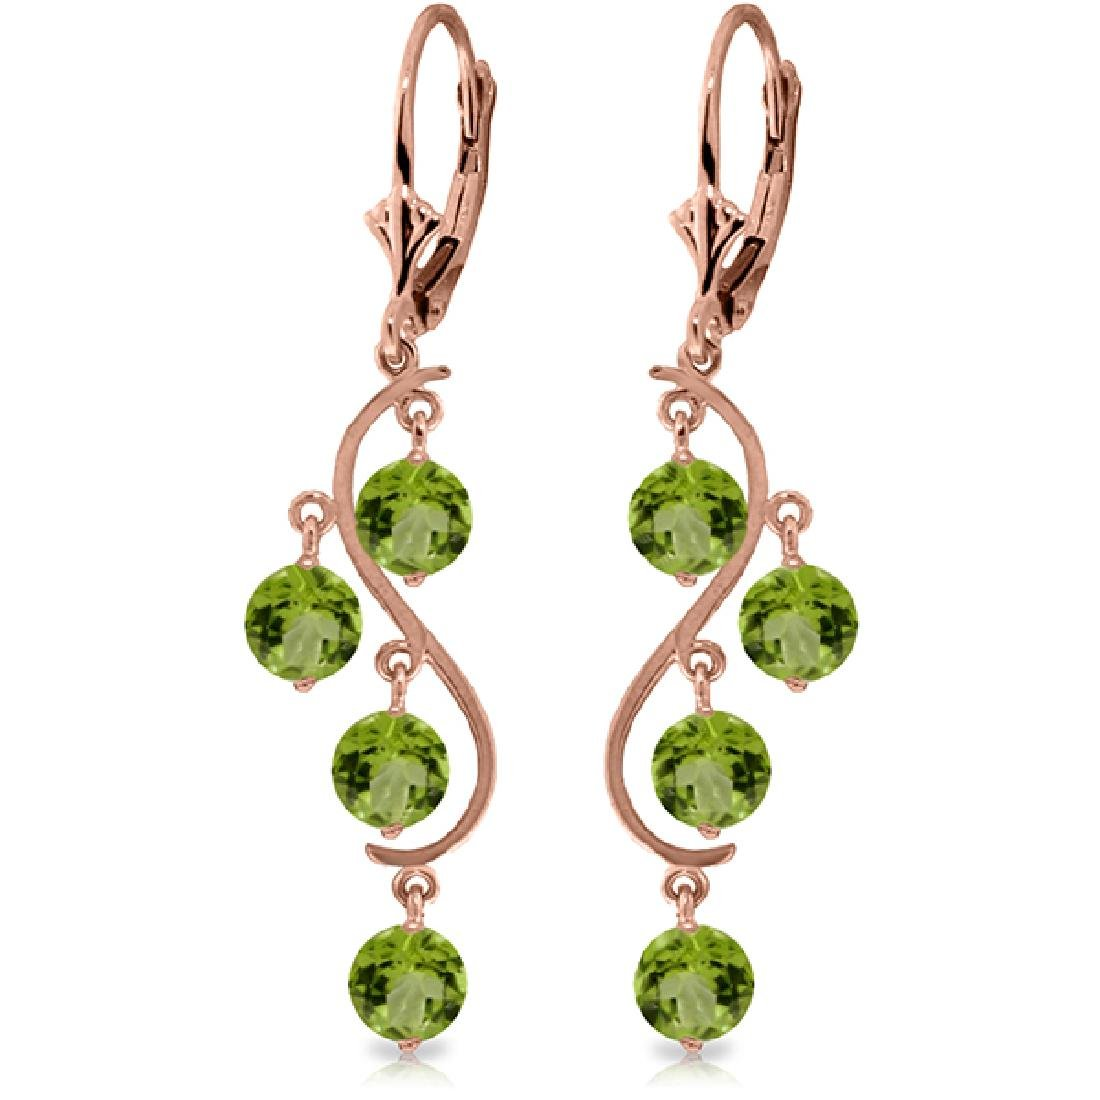 Genuine 4.95 ctw Peridot Earrings Jewelry 14KT Rose